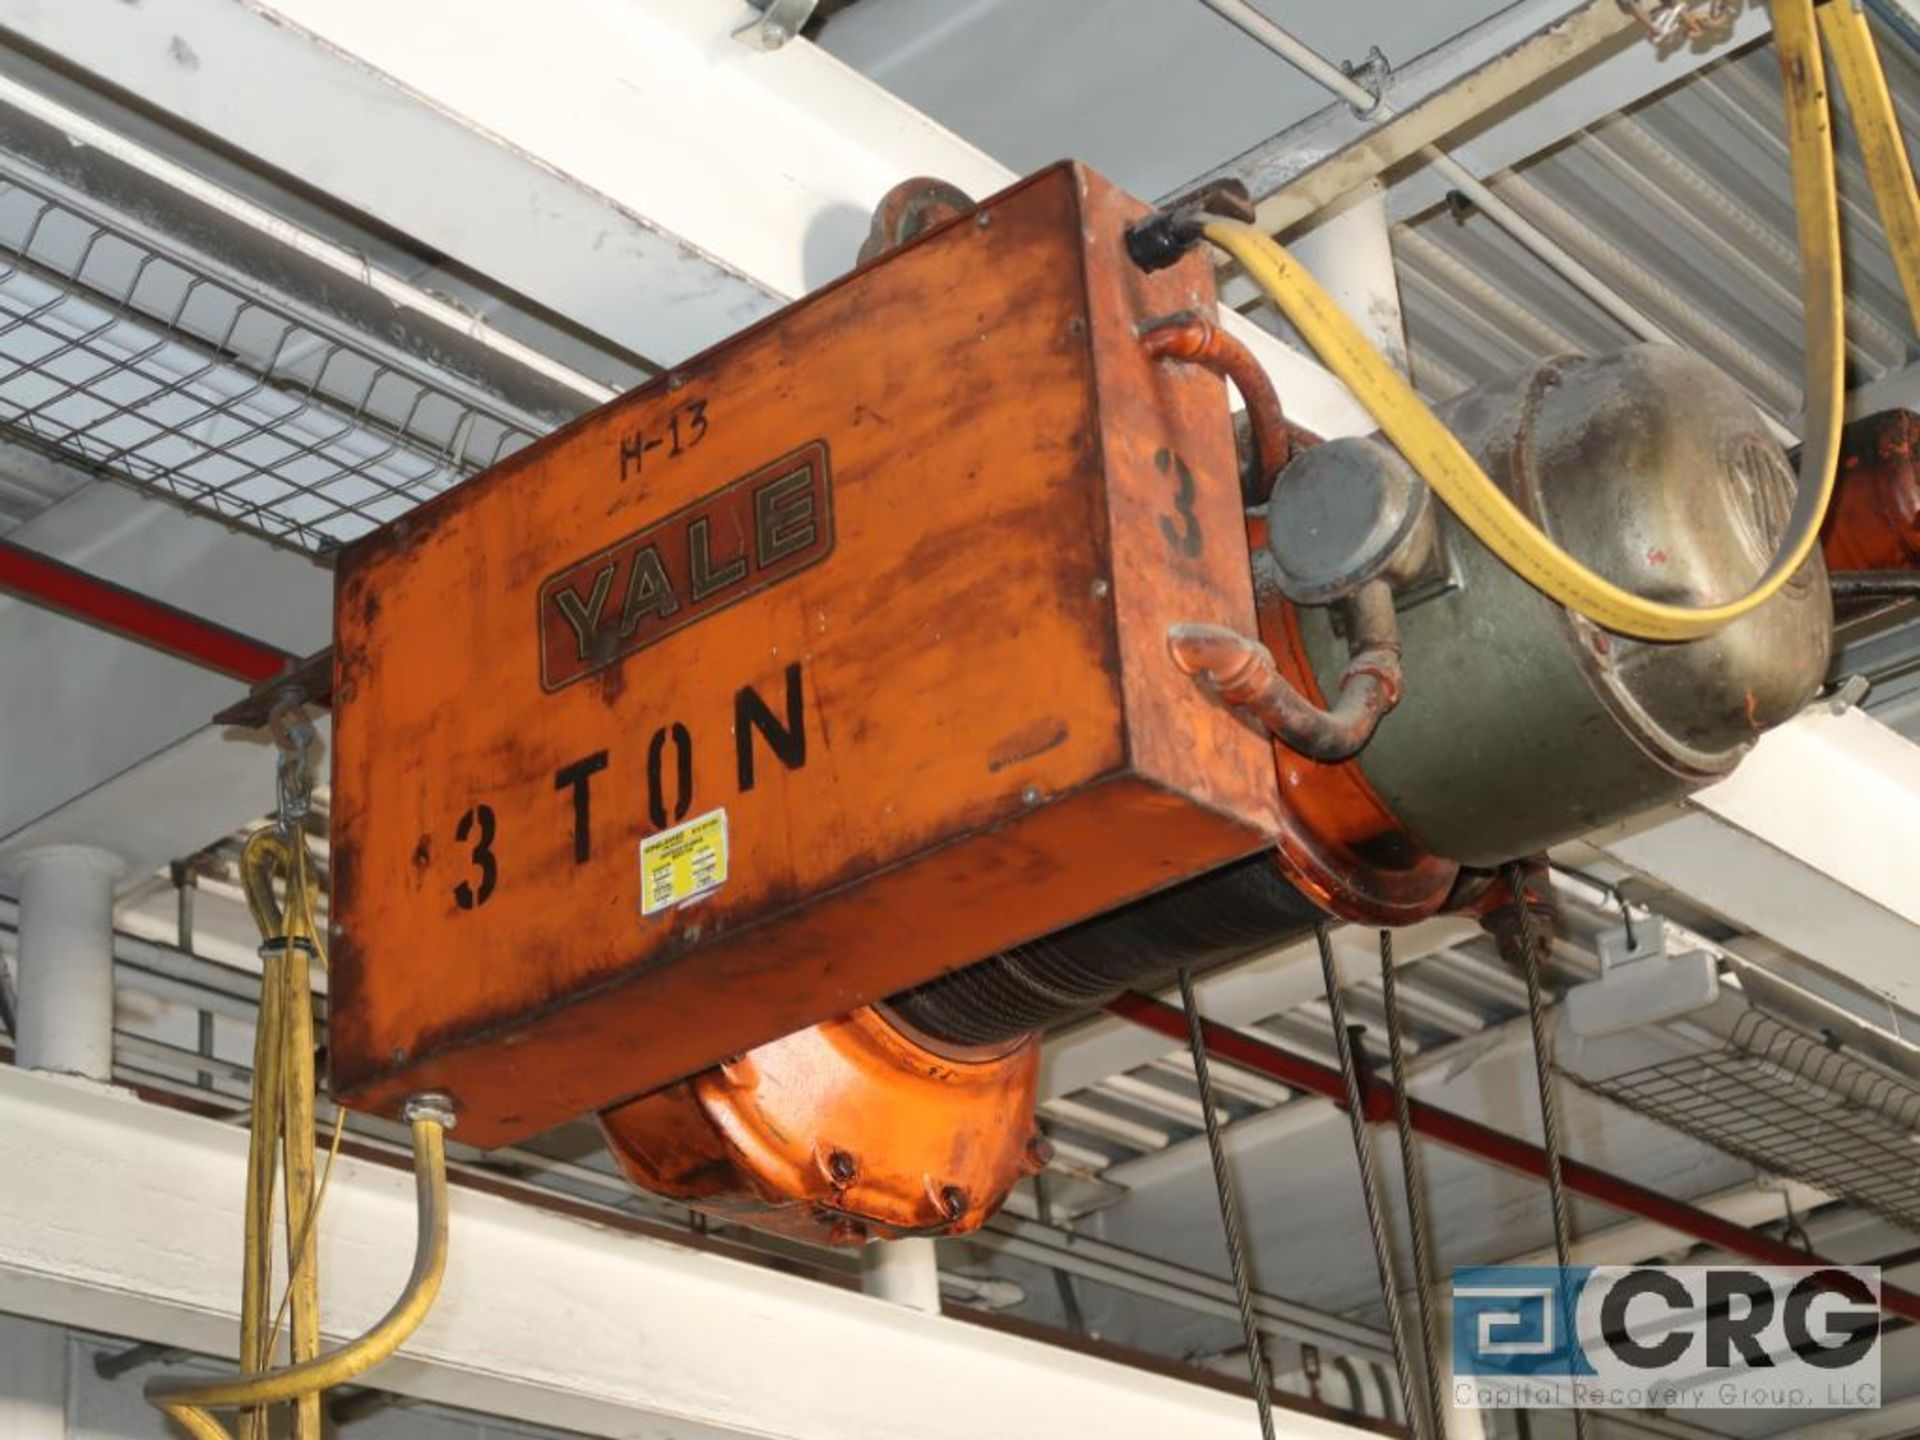 Yale electric hoist, 3 ton, hoist only, no beam (Located at Shipping Dock) - Image 3 of 3